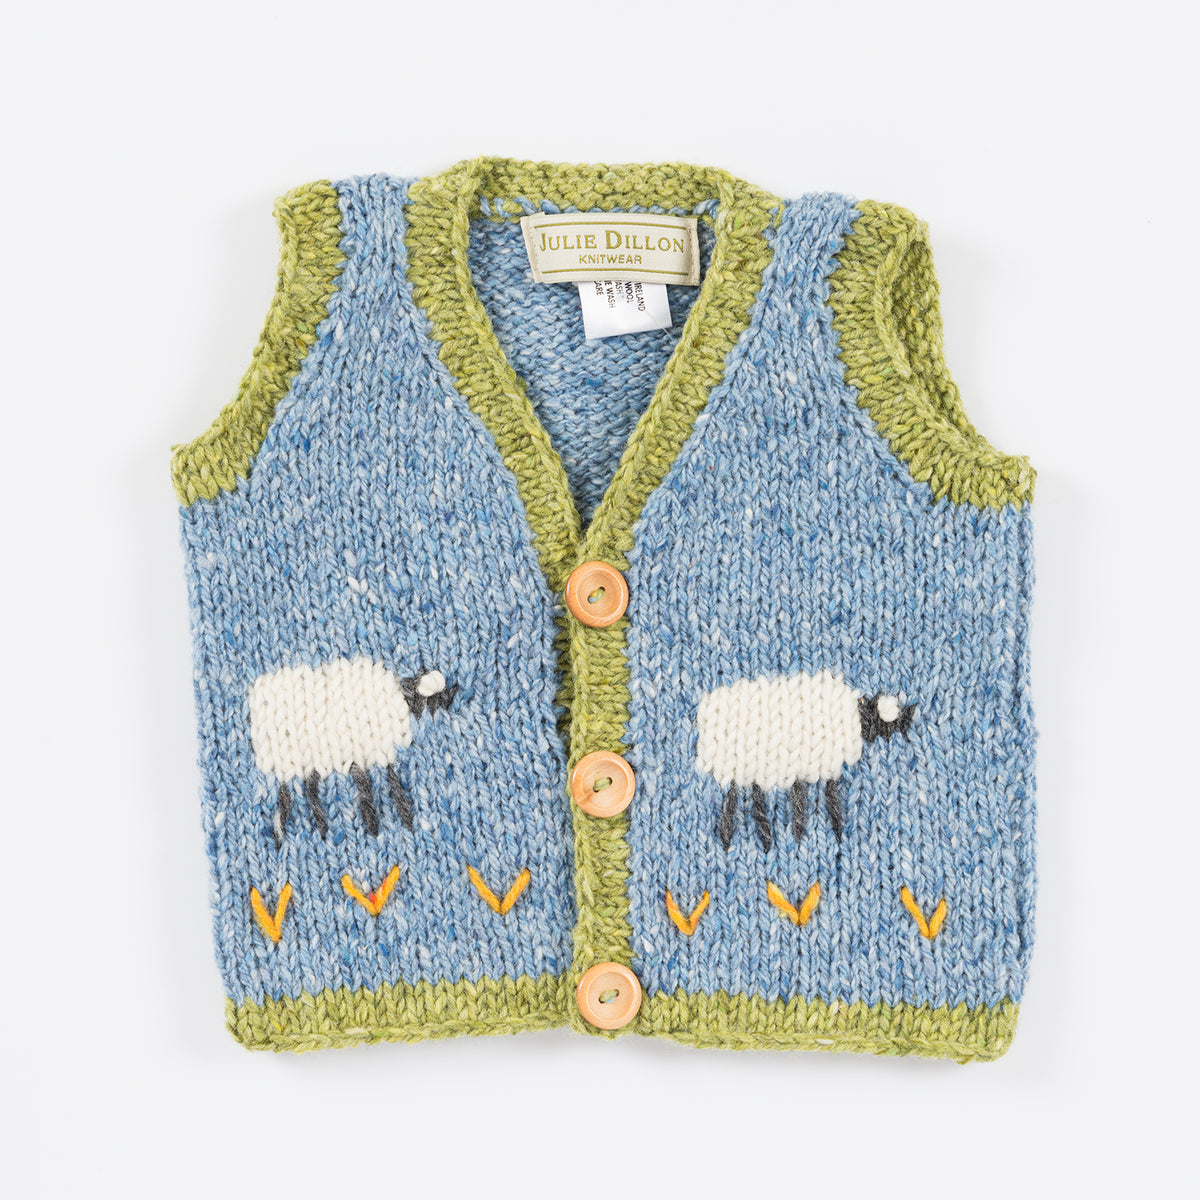 Handknitted Baby Waistcoat - Blue with Sheep motif